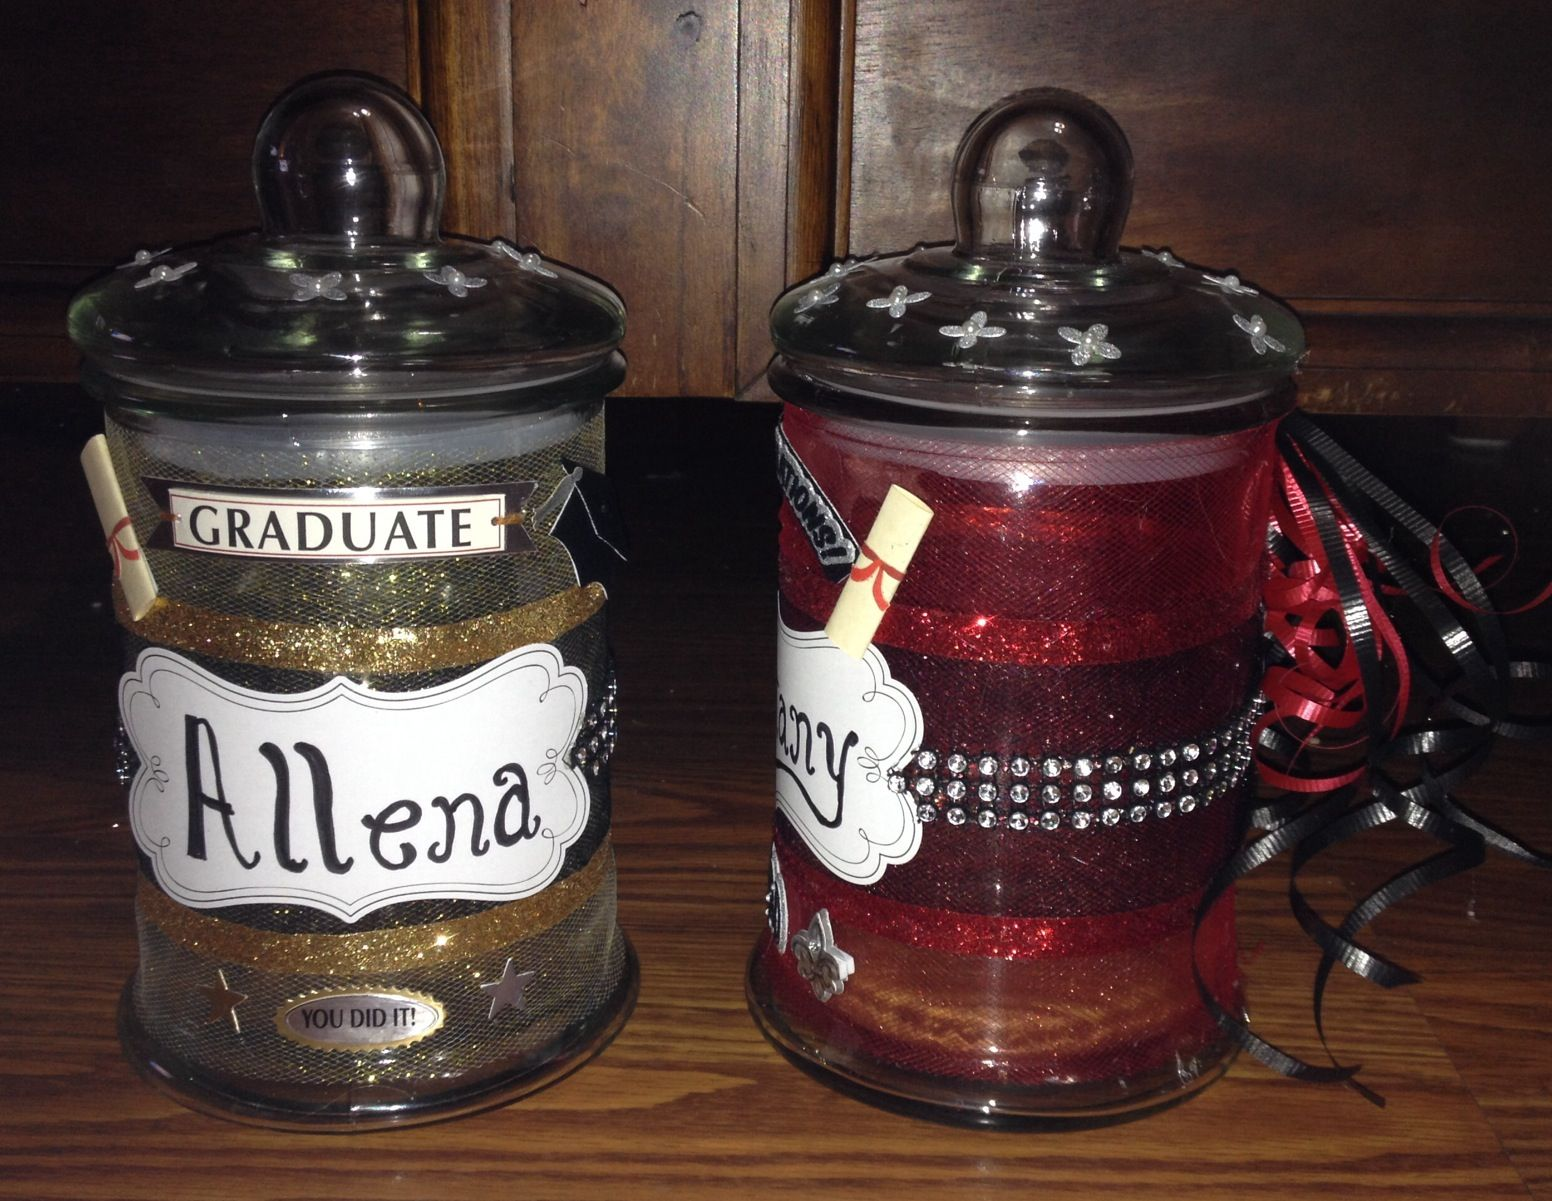 Graduation Memory Jars They Are So Cute Put Your Favorite Memory In The Jar For The Graduate To Read L Memory Jar Graduation Graduation Memories Memory Jars